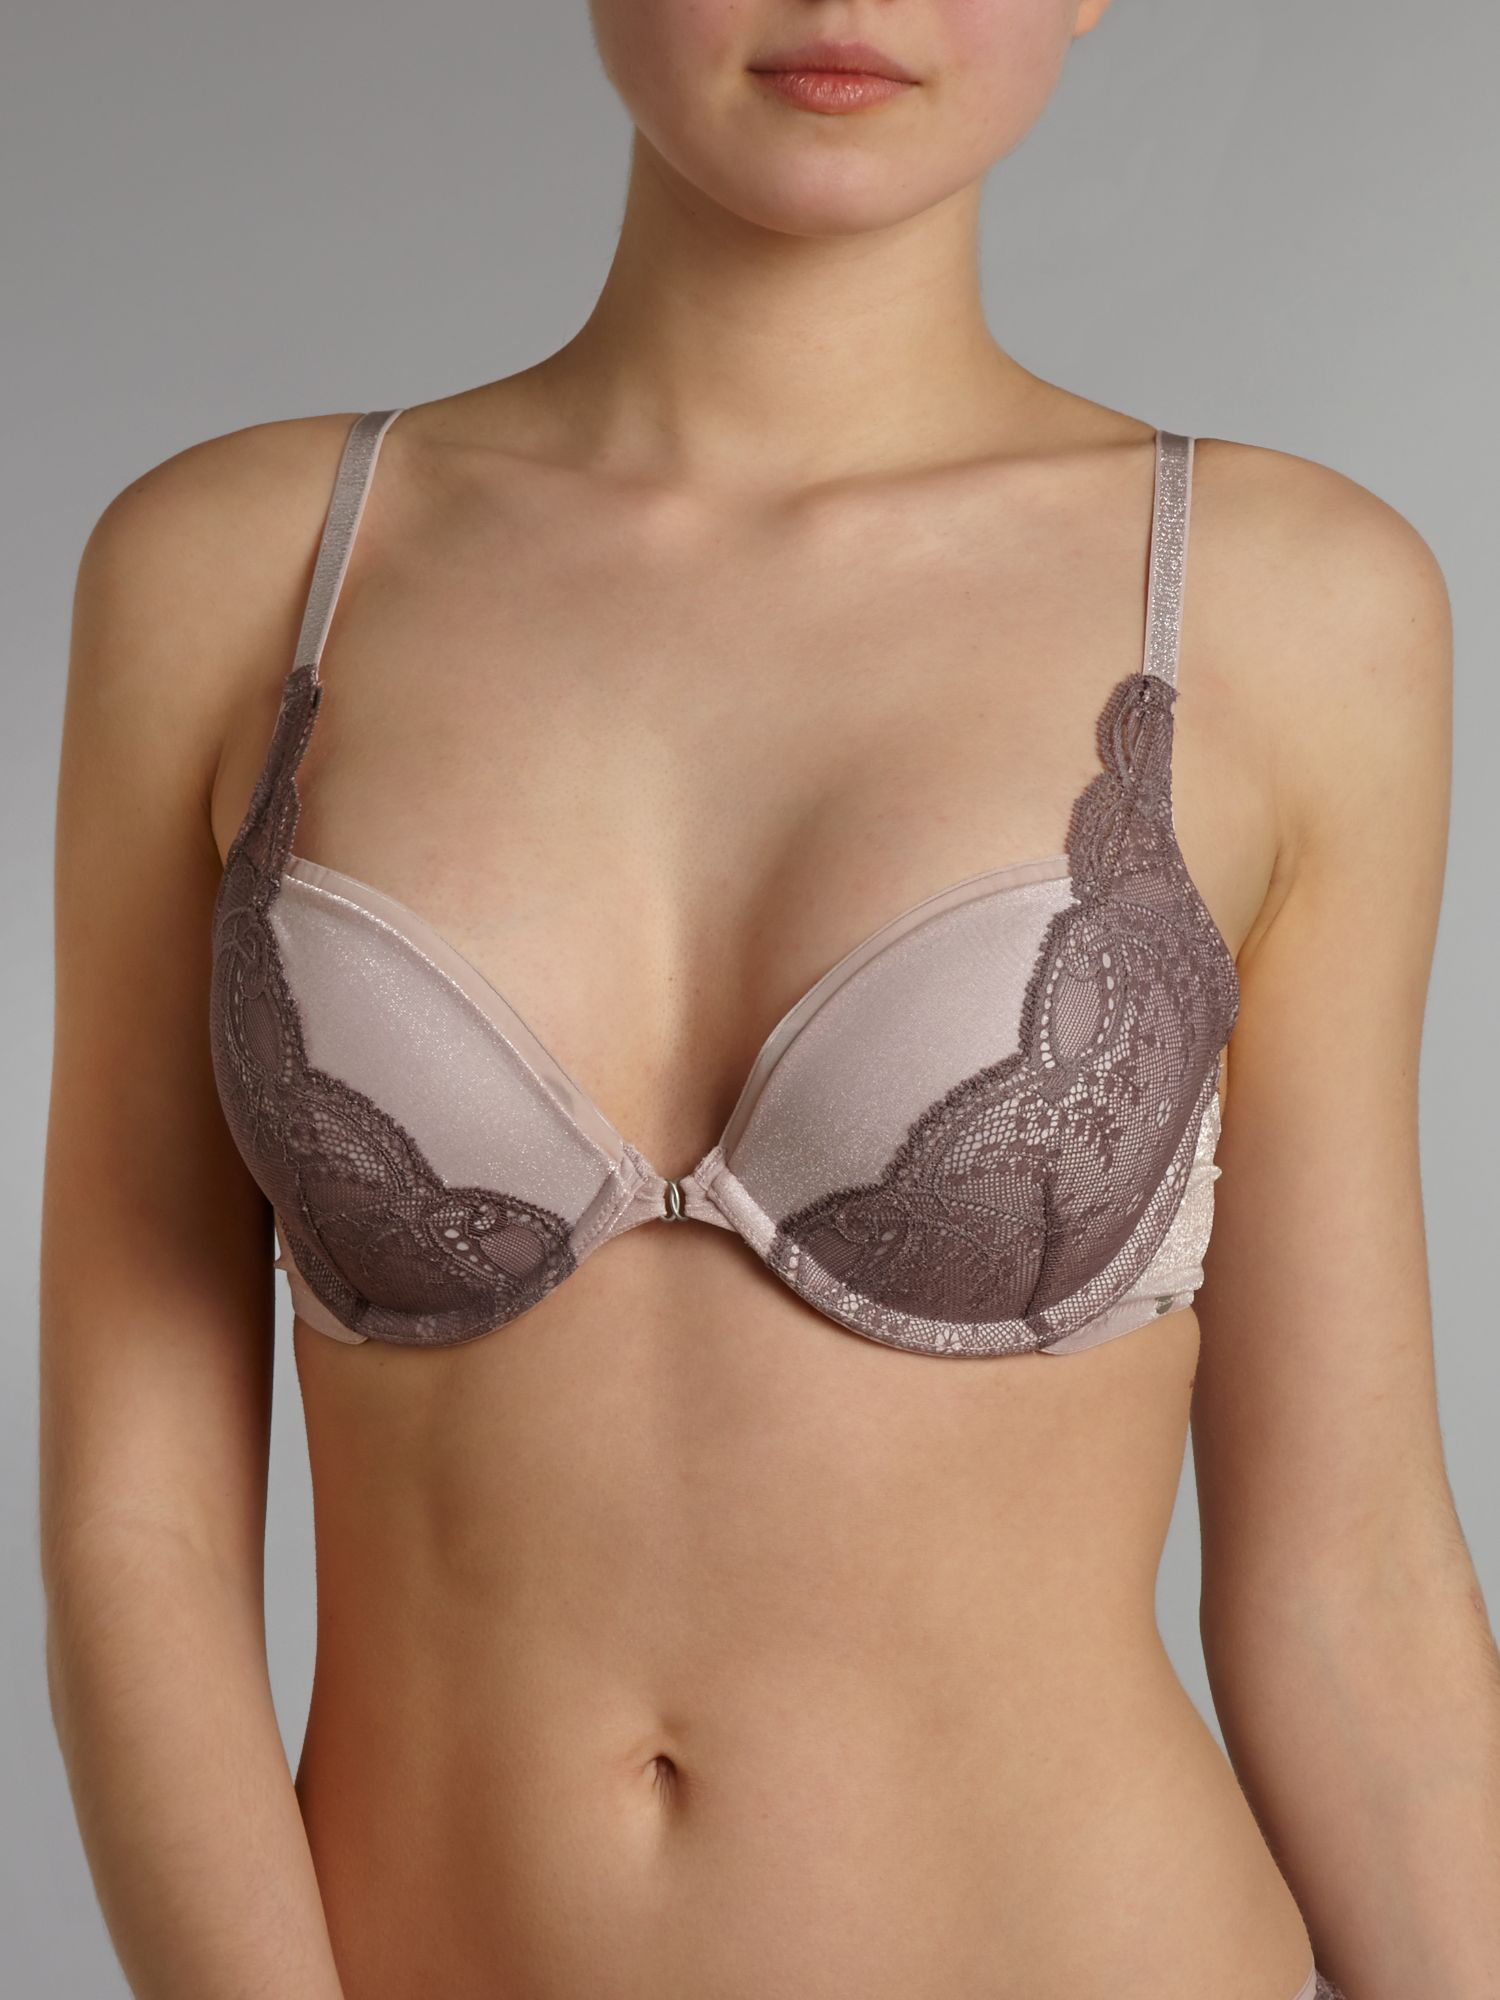 Naked glamour l push up bra